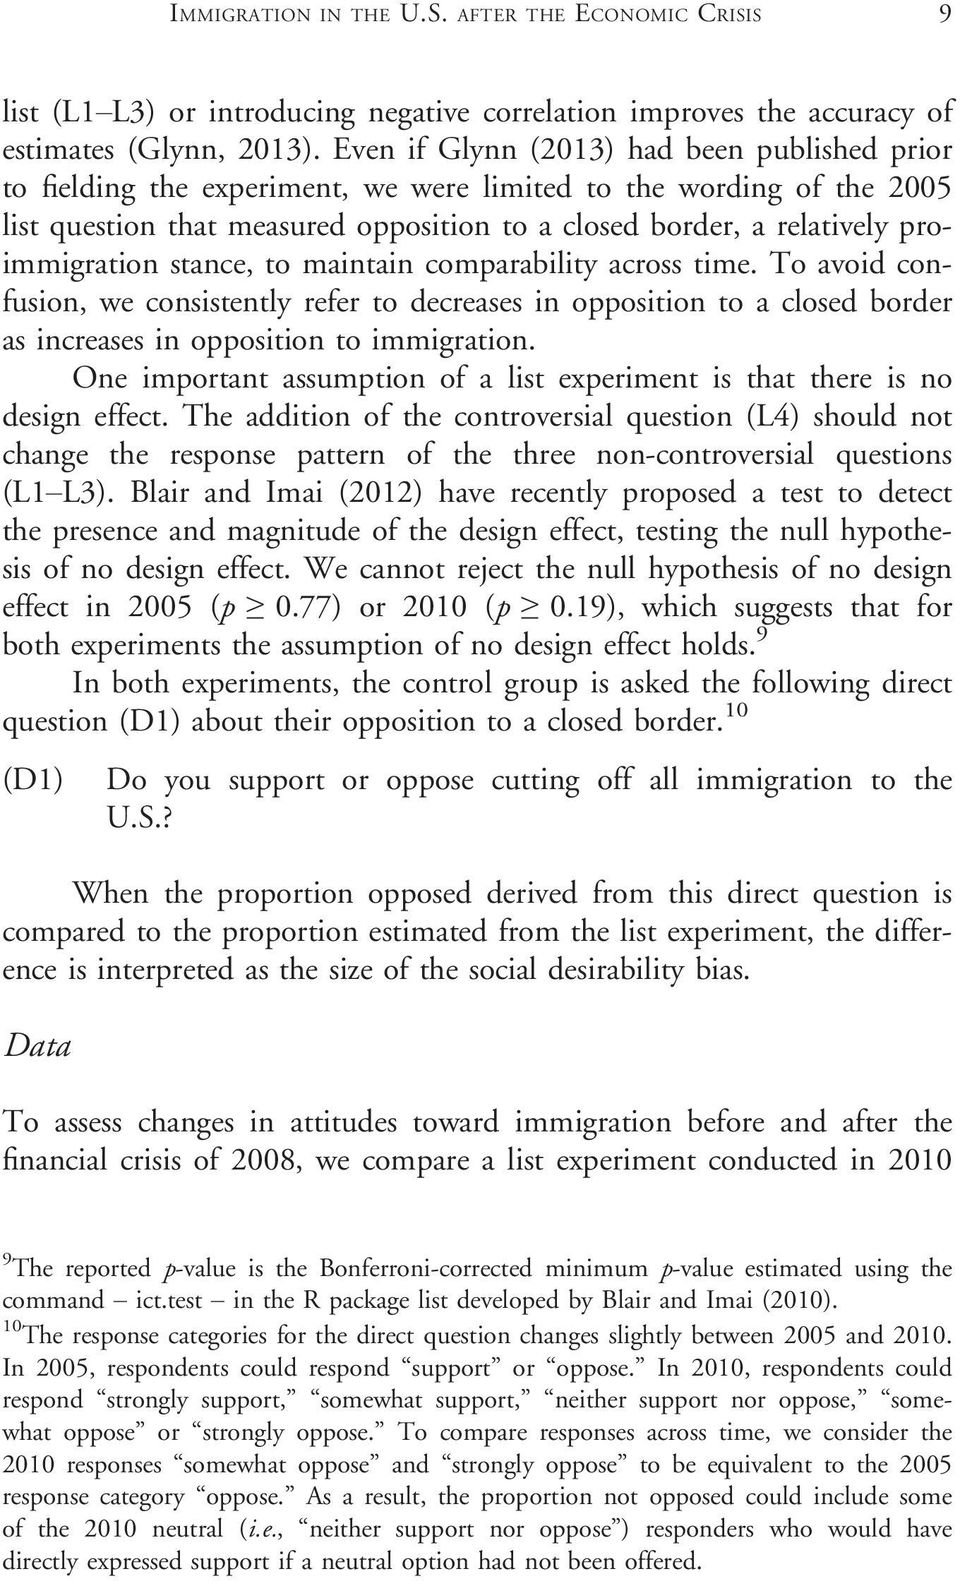 proimmigration stance, to maintain comparability across time. To avoid confusion, we consistently refer to decreases in opposition to a closed border as increases in opposition to immigration.